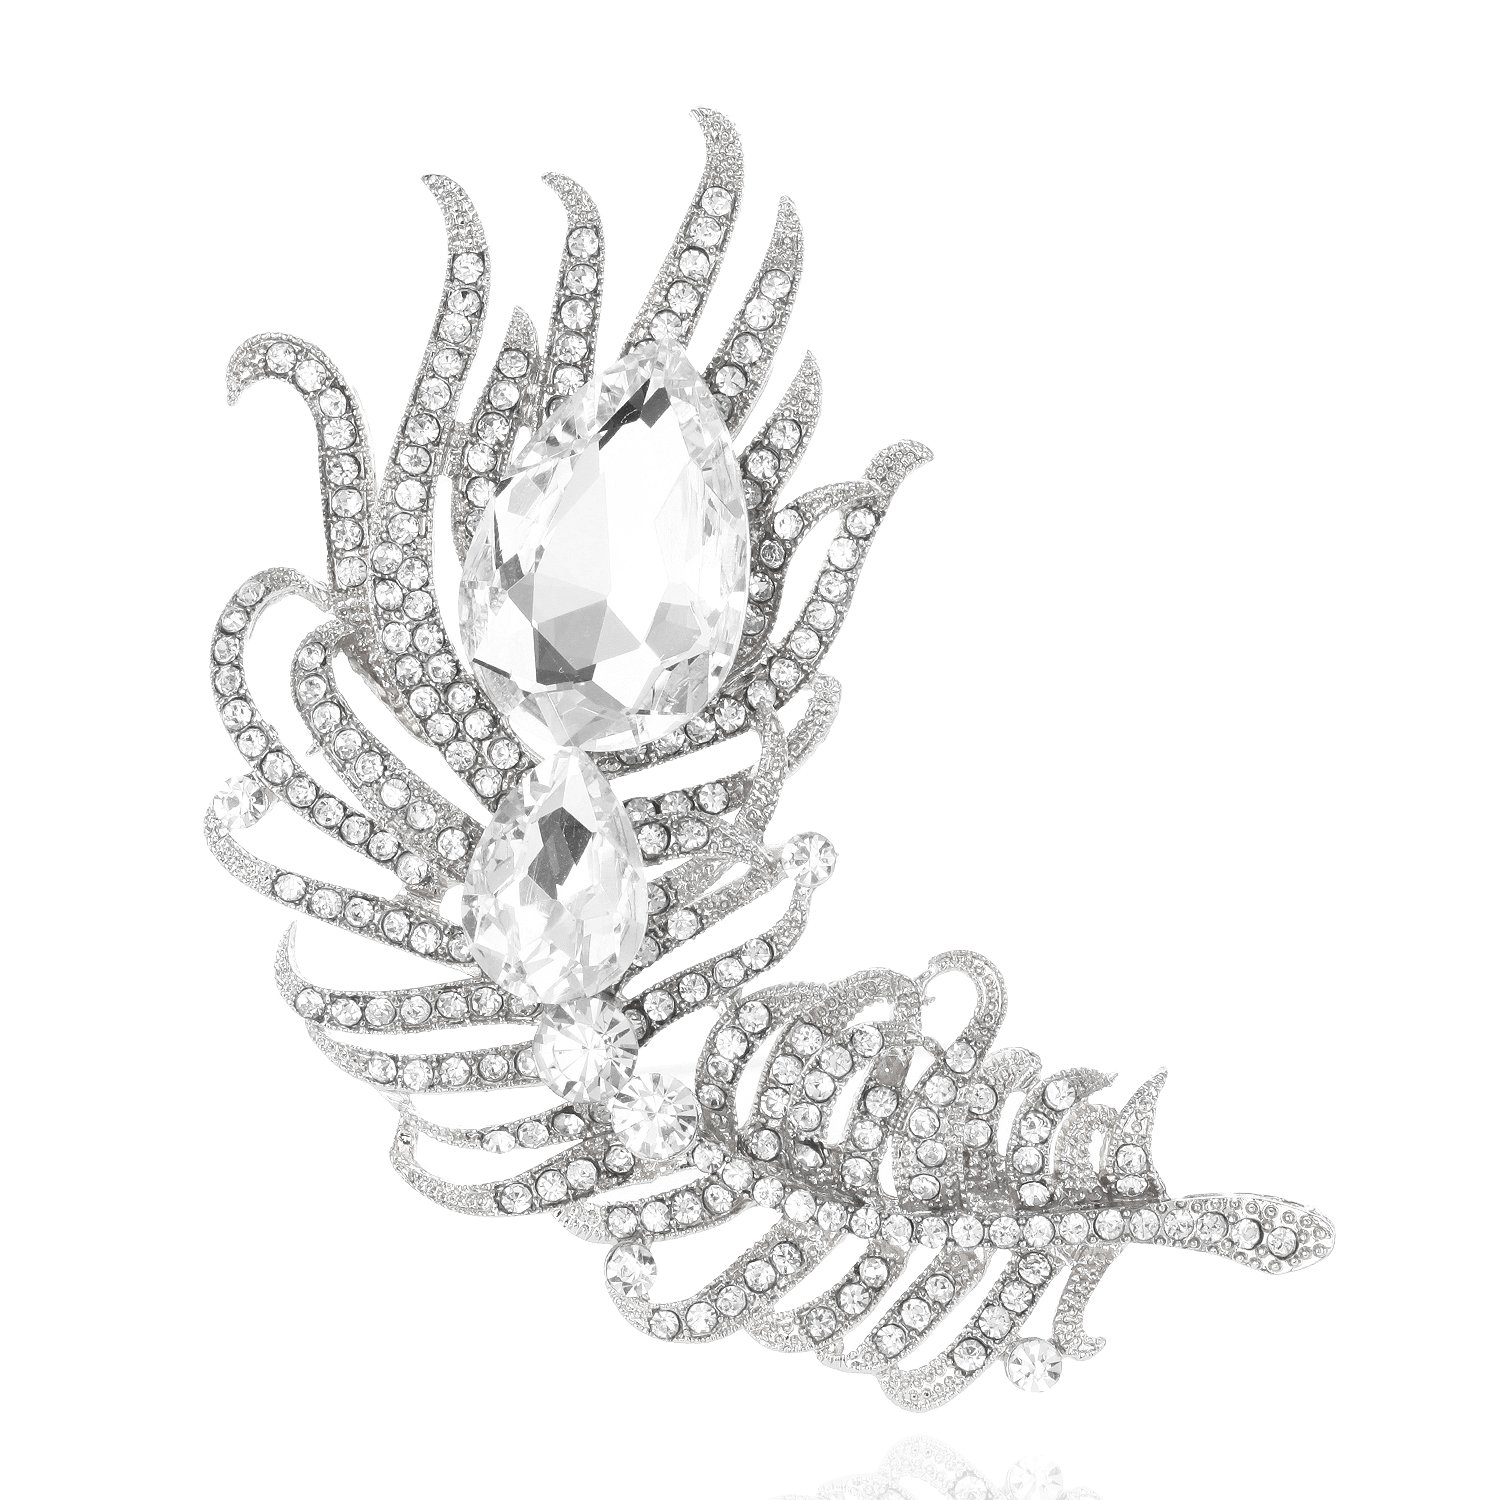 SP Sophia Collection Decorative Cubic Zirconia Rhinestone Pave Peacock Feather Fashion Dress Brooch in Clear Silver